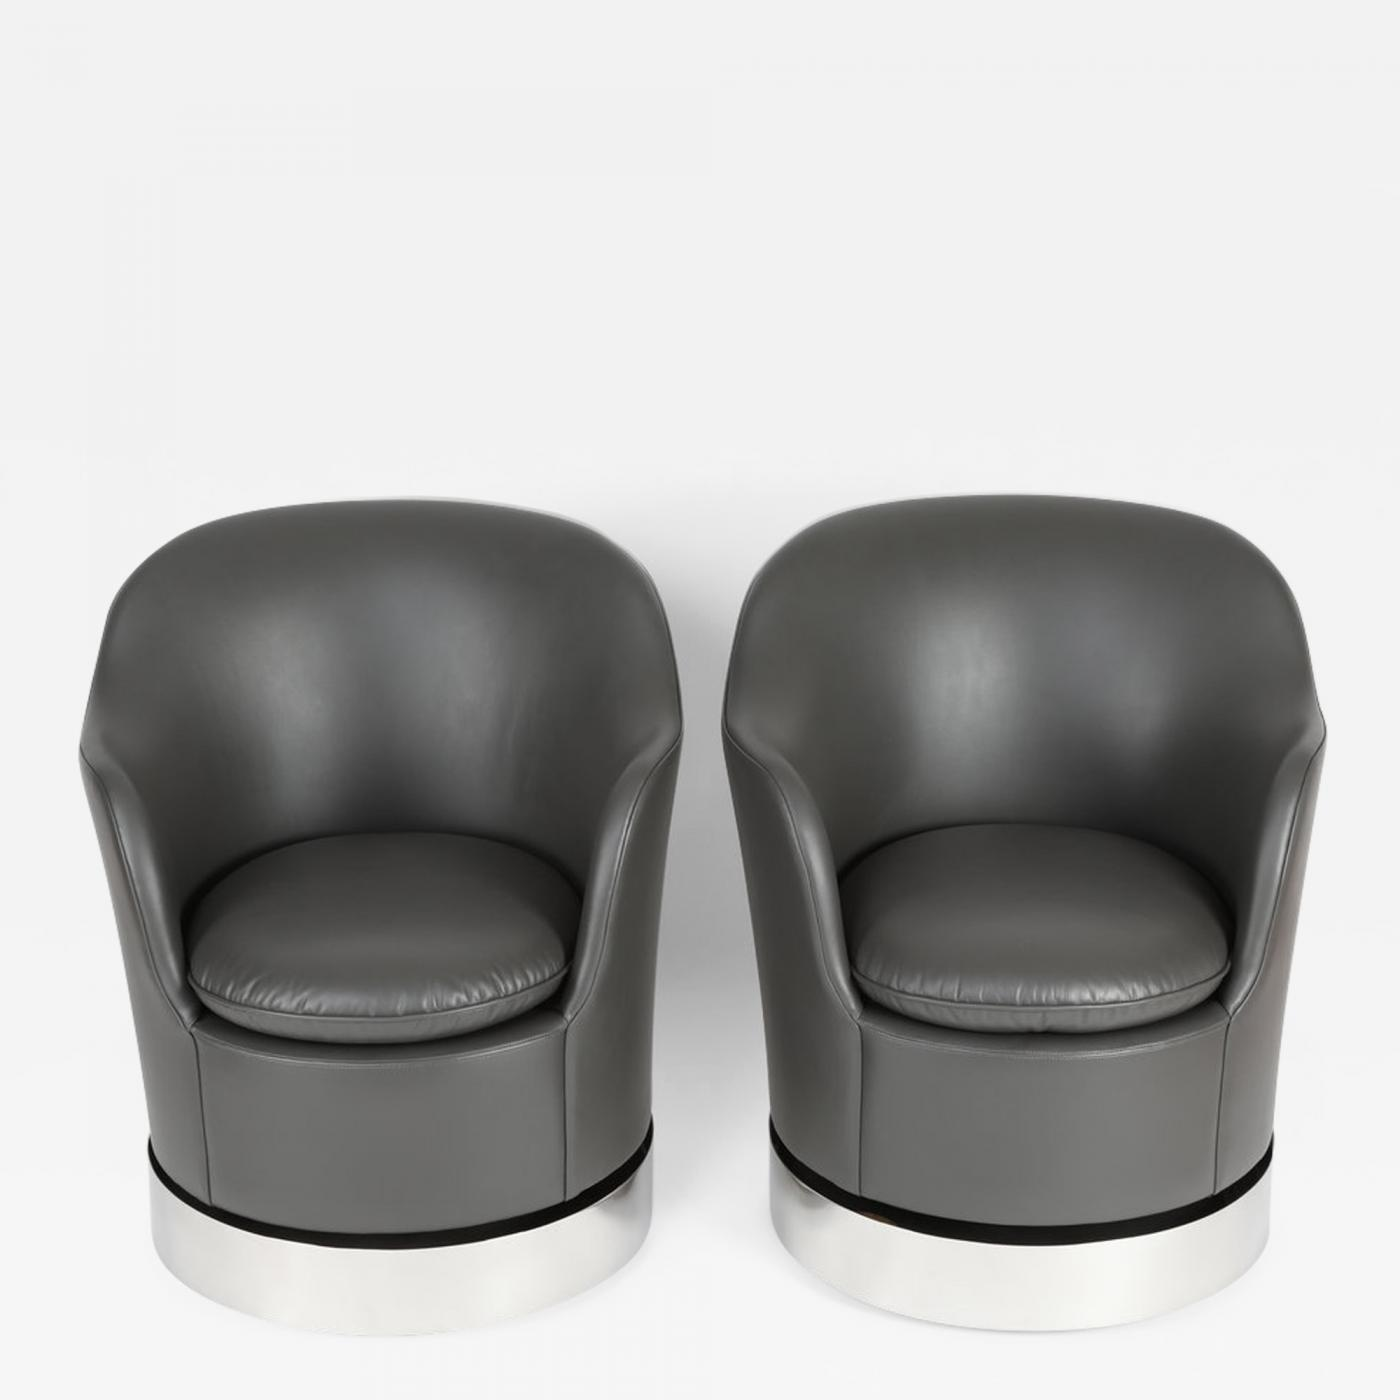 Fabulous Philip Enfield Pair Of Philip Enfield Tilt And Swivel Barrel Chairs On Casters Lamtechconsult Wood Chair Design Ideas Lamtechconsultcom